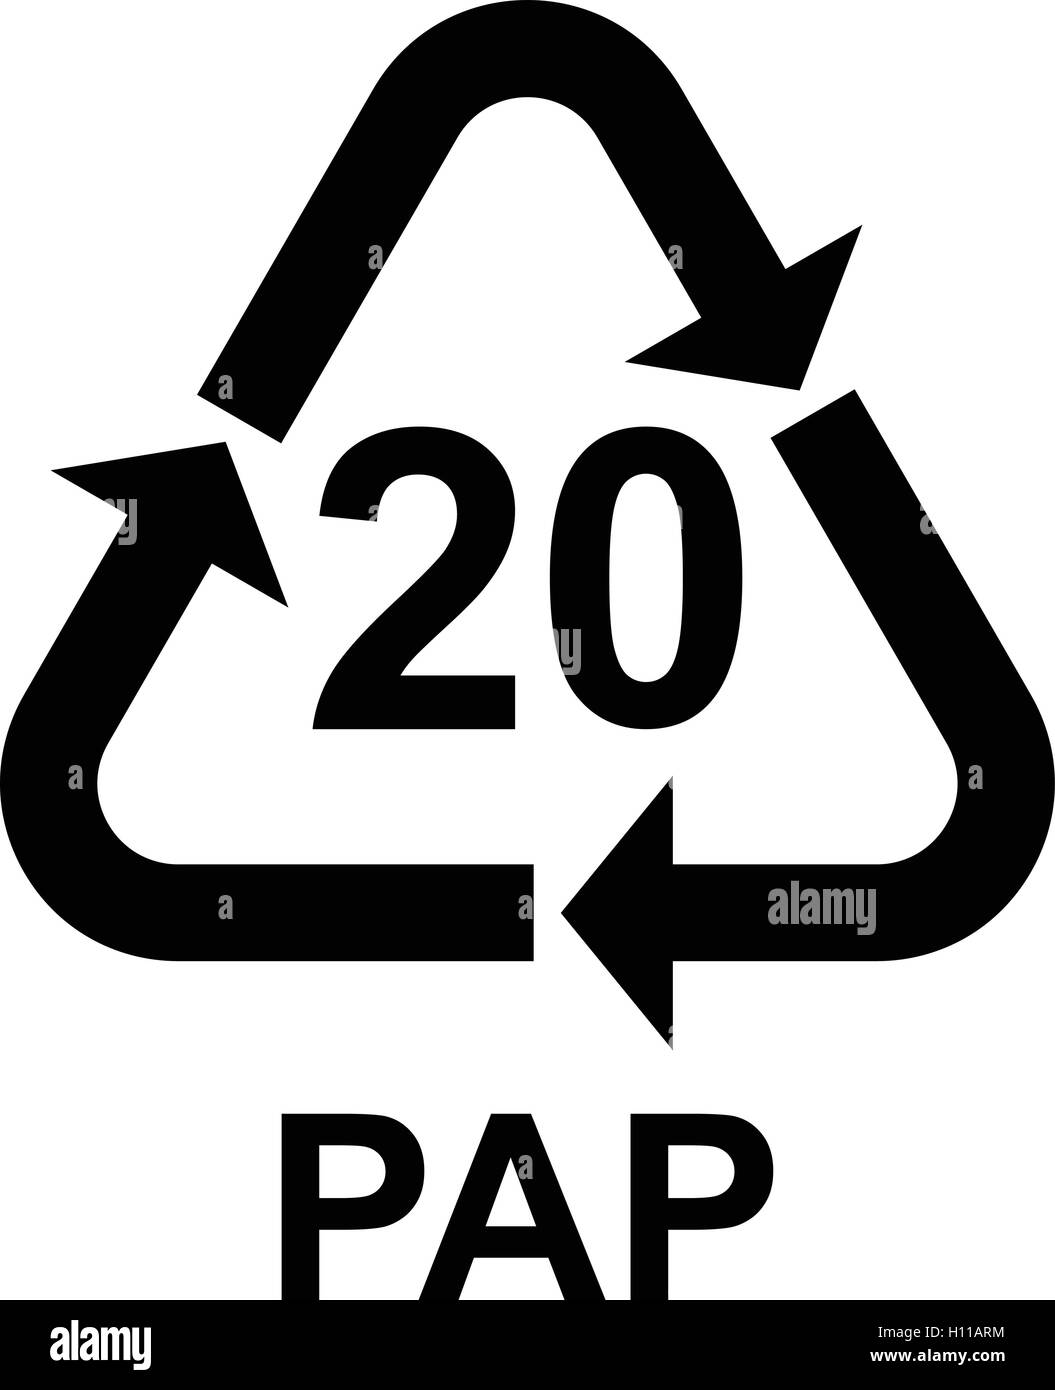 Paper recycling symbol PAP 20 cardboard, vector illustration. - Stock Vector